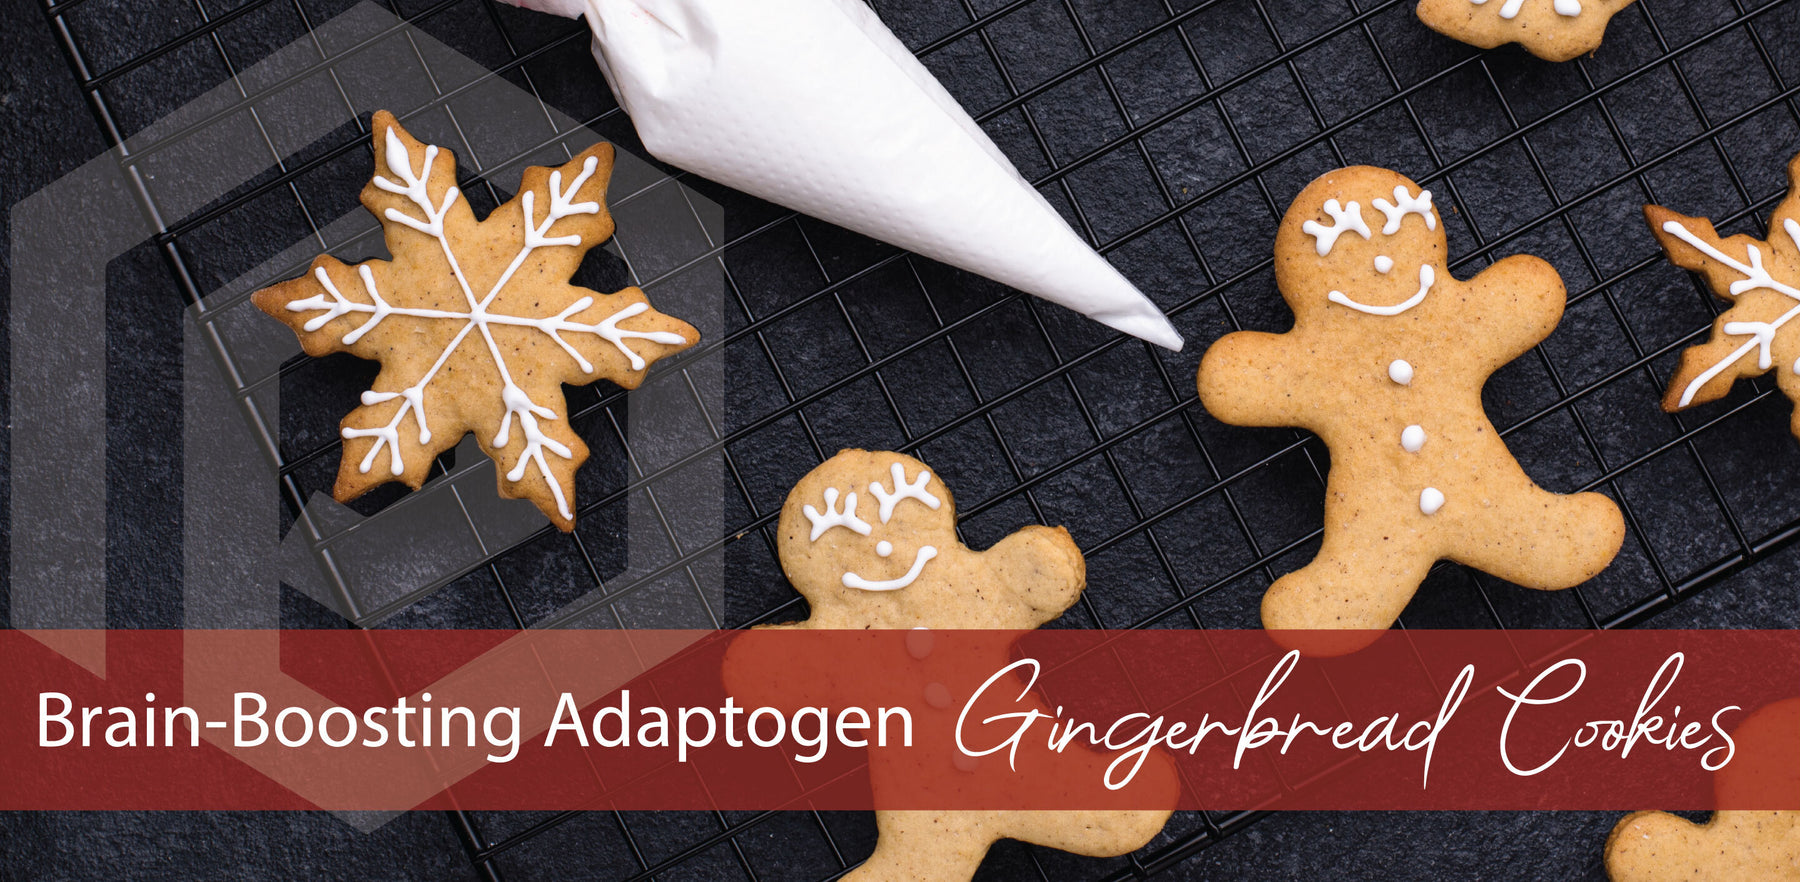 Brain-Boosting Adaptogen Gingerbread Cookies